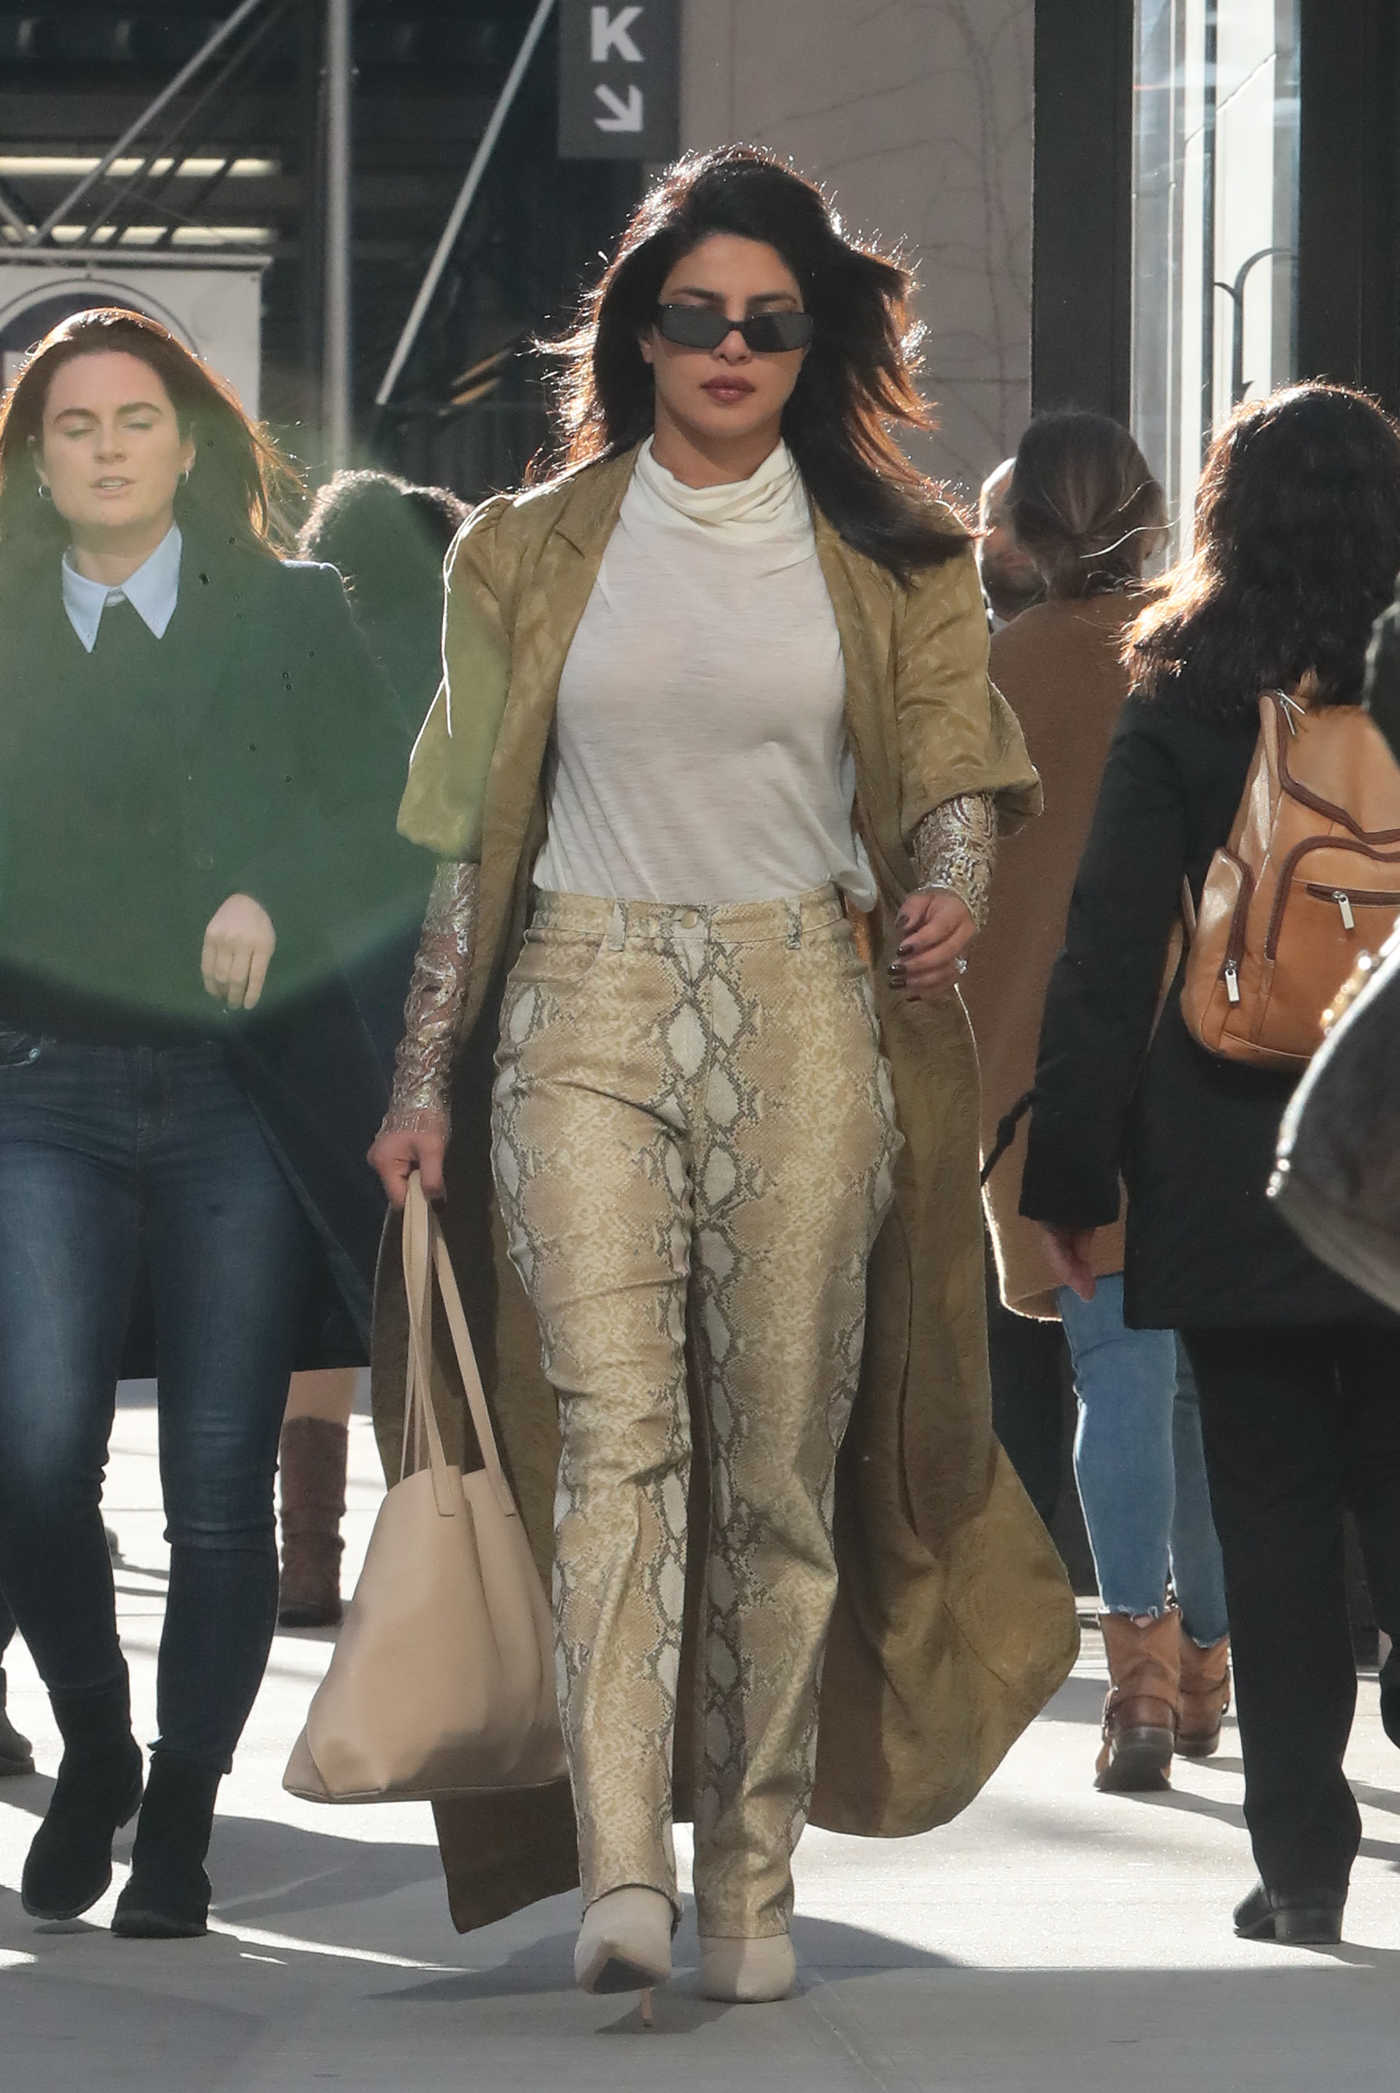 Priyanka Chopra in a Yellow Snakeskin Pants Was Seen Out in New York City 03/19/2019